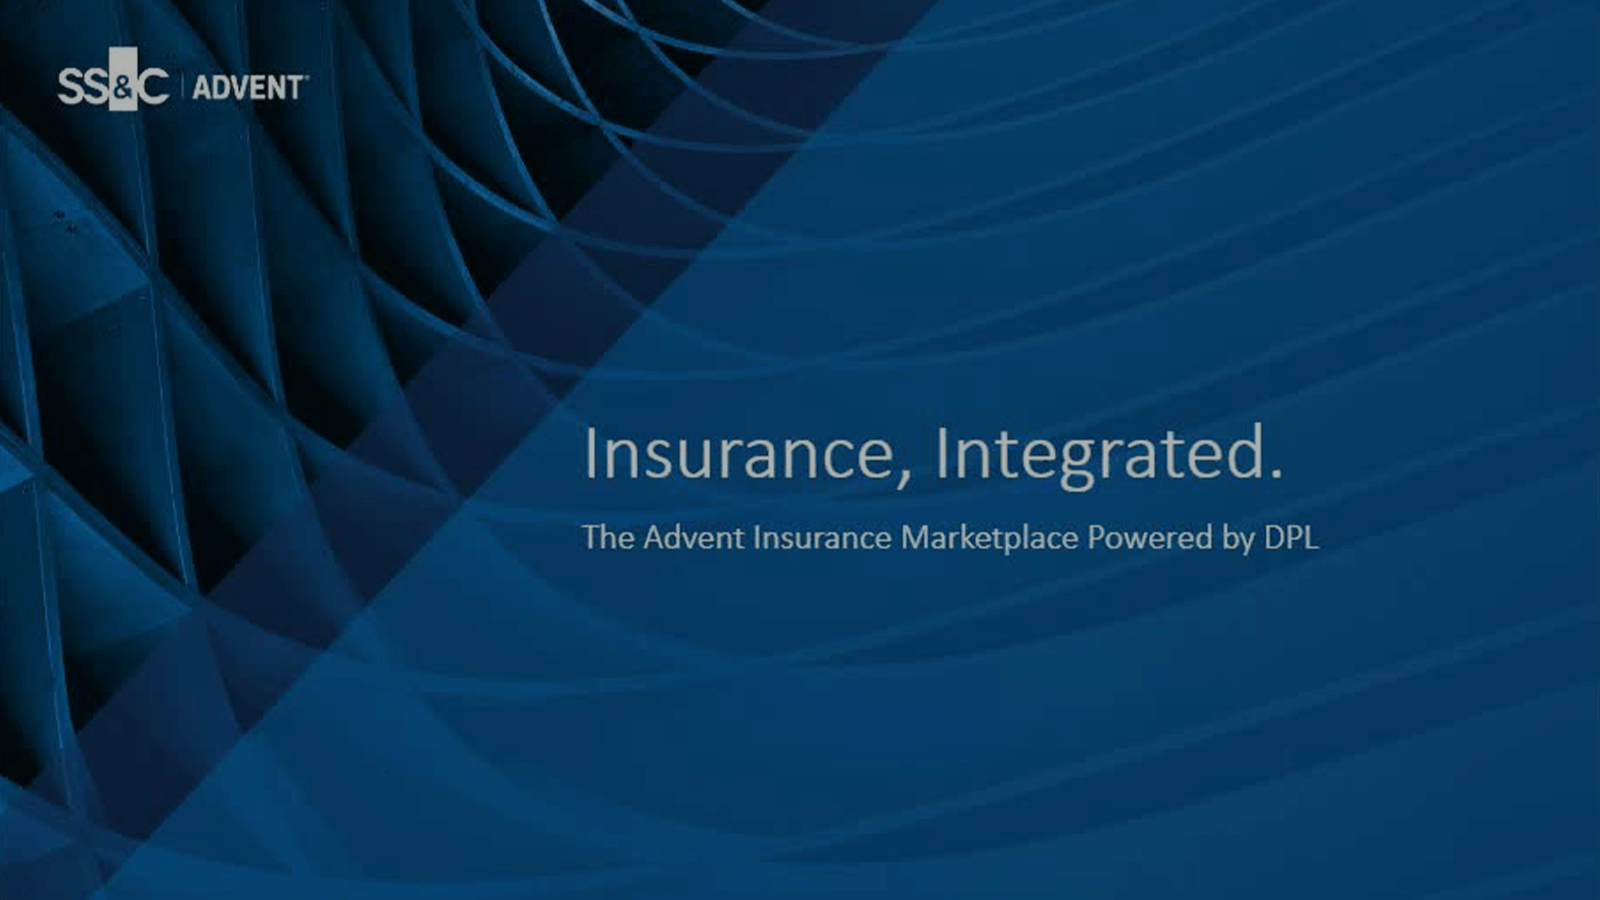 poster image for Insurance, Integrated